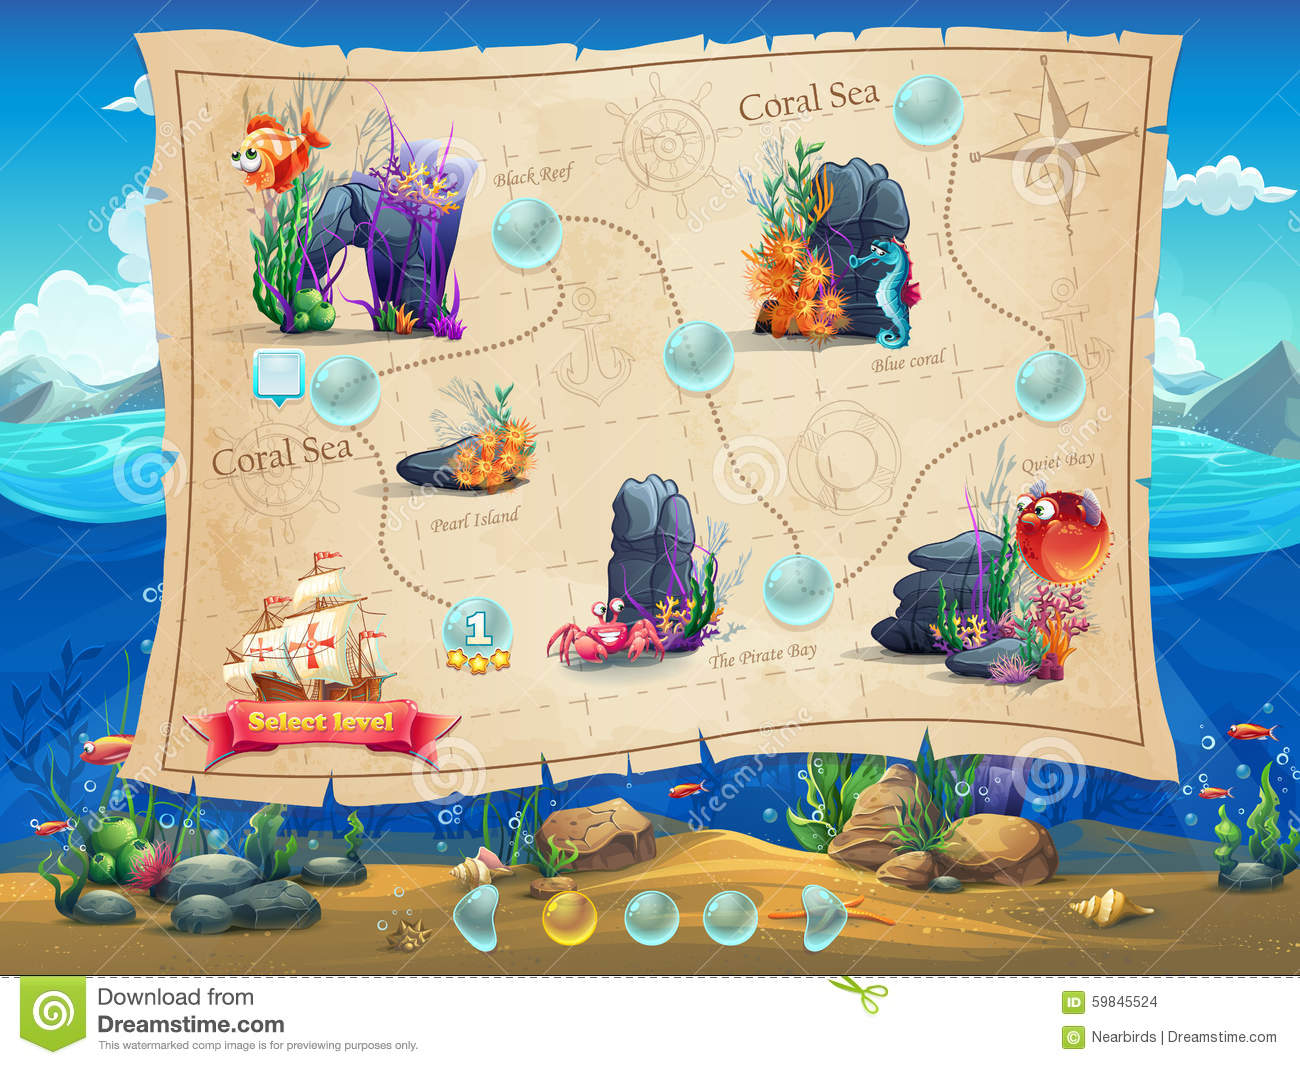 Fish world illustration example screen levels game for Fish world games